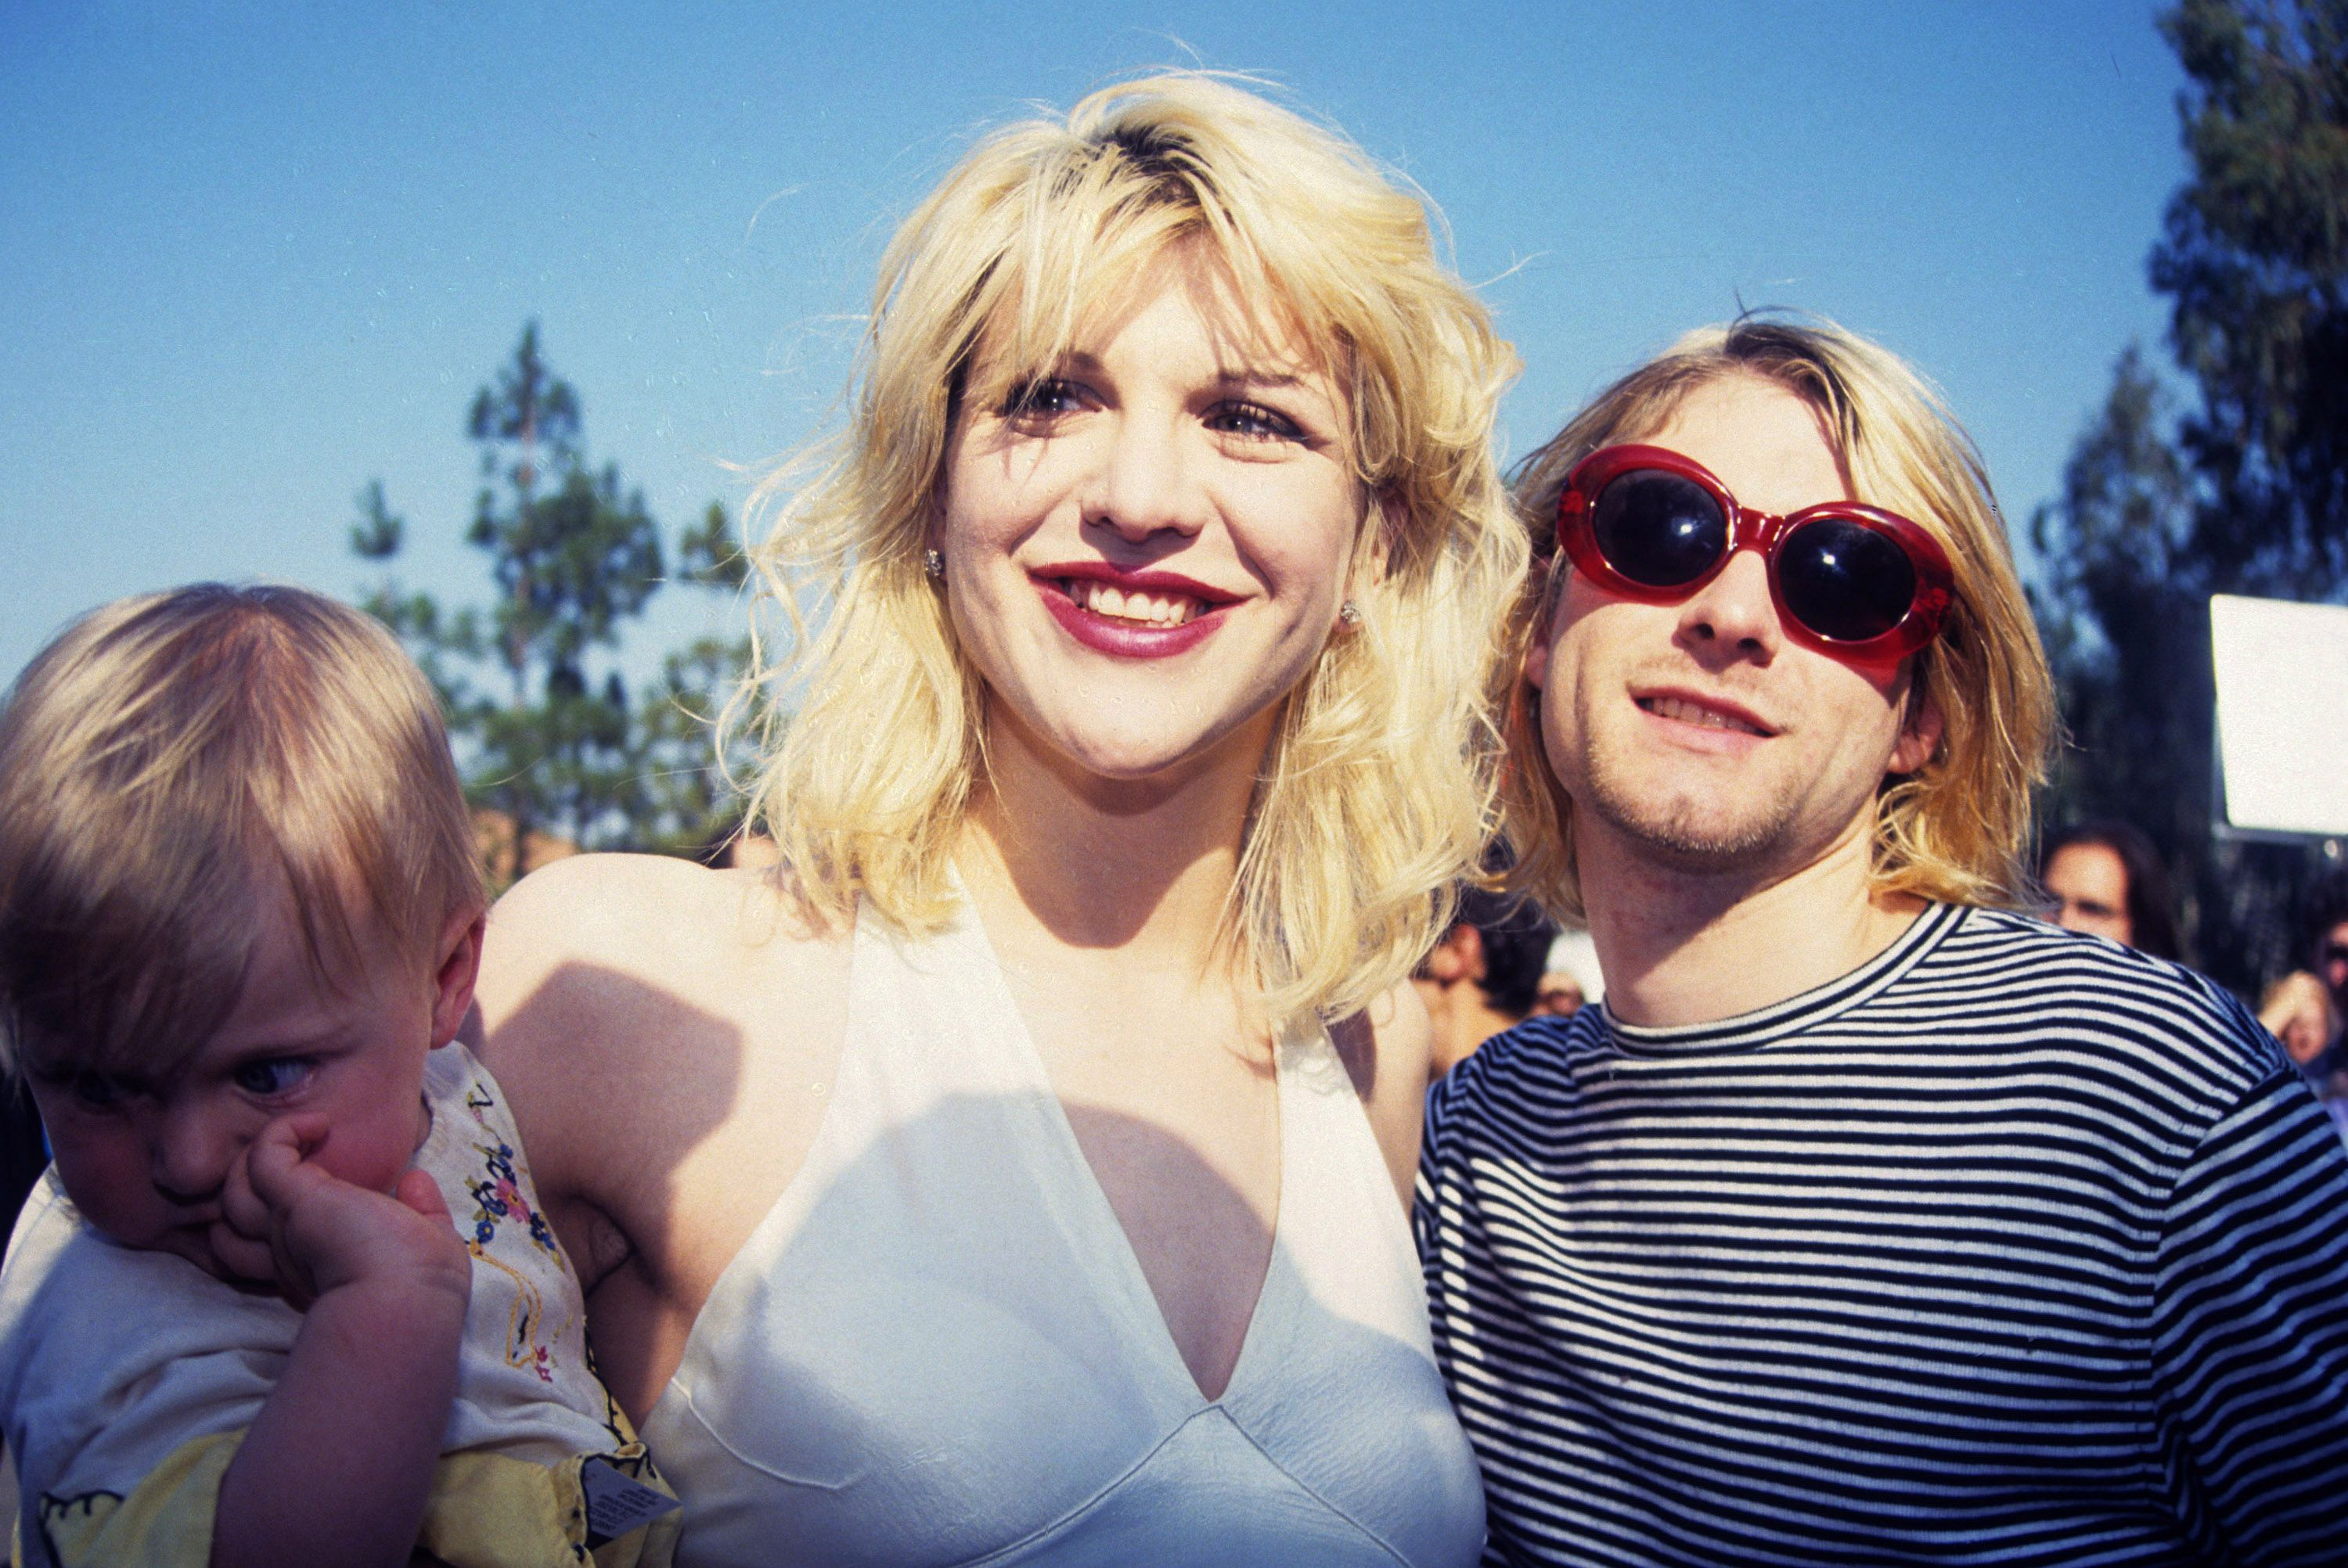 Kurt Cobain with wife Courtney Love and daughter Frances Bean Cobain at the 10th Annual MTV Video Music Awards. | Source: Getty Images